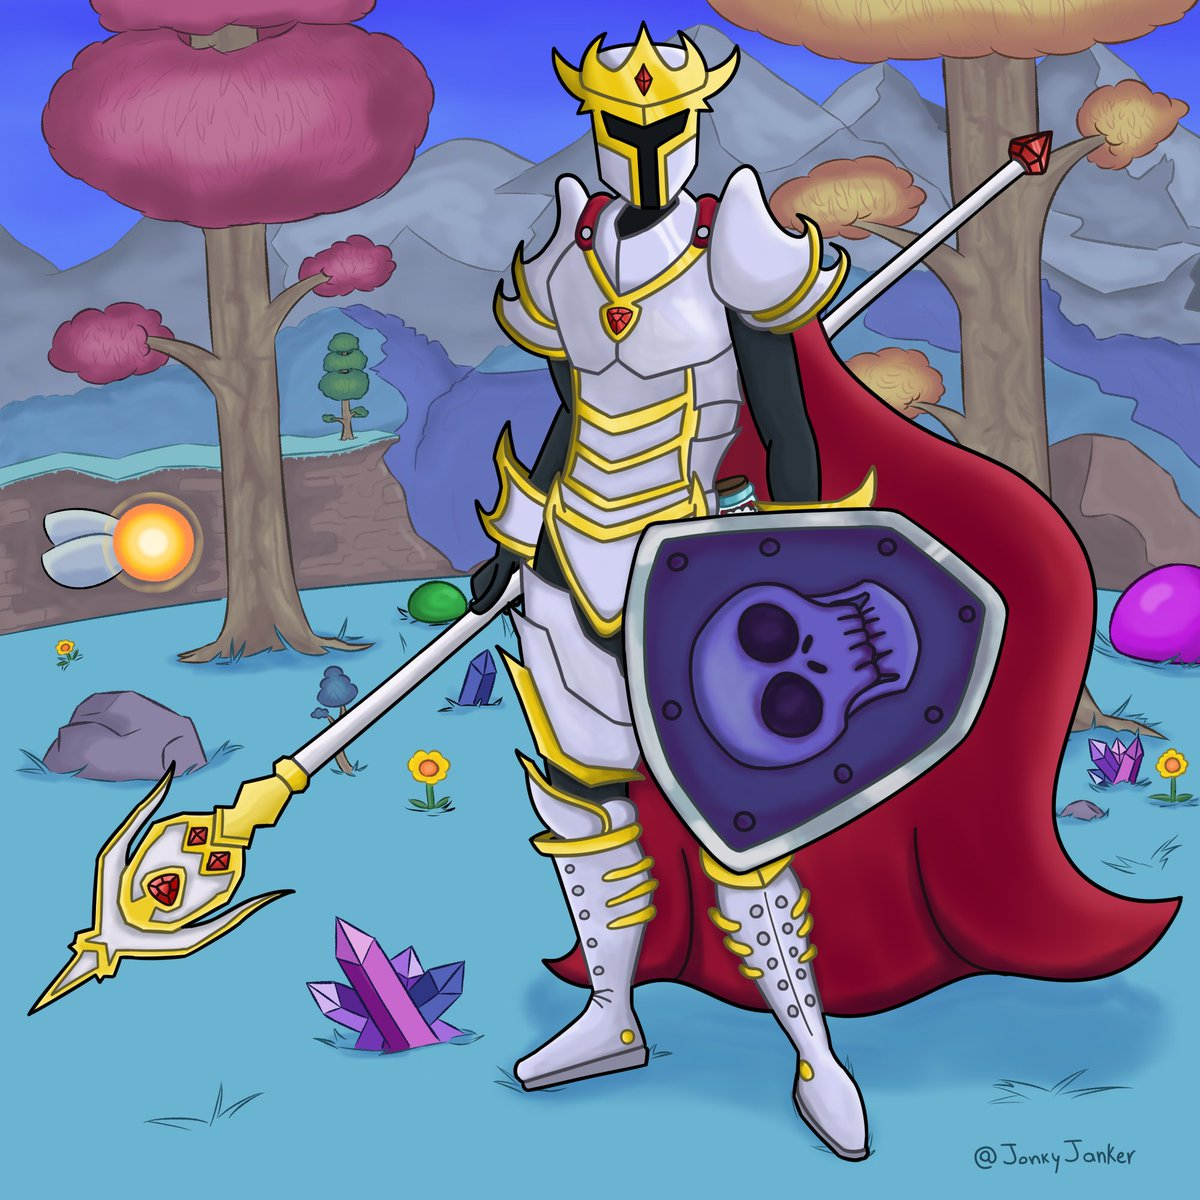 Replying to @JonkyJanker: The new design for the hallowed armor on terraria is so AWESOME!! #Terraria